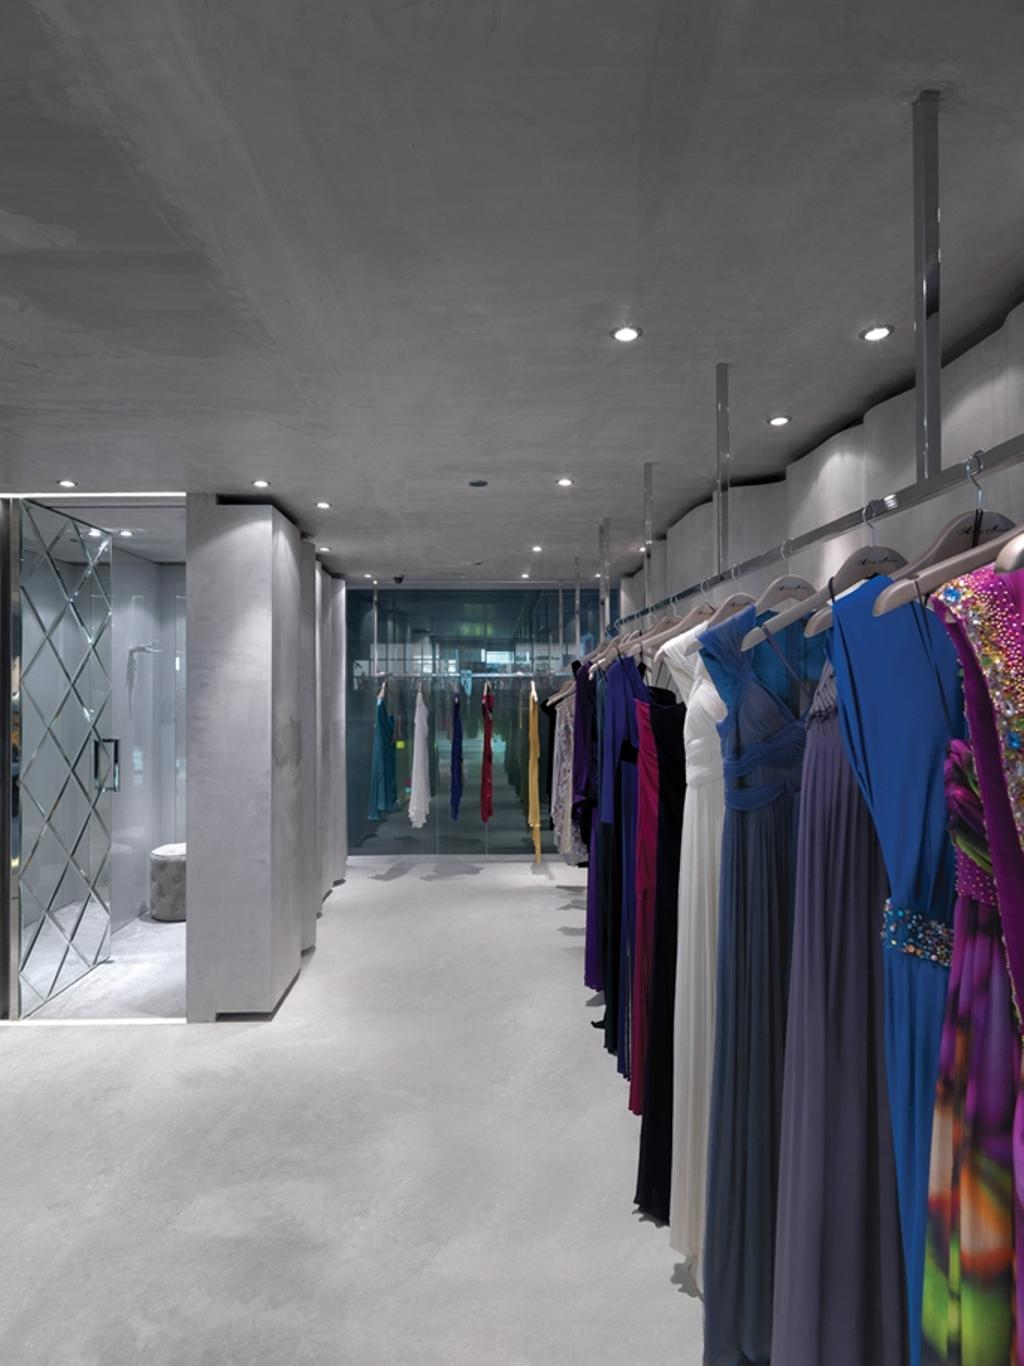 Ashley Isham Mandarin, Commercial, Architect, Ministry of Design, Contemporary, Changing Rooms, Concrete Floor, Recessed Lighting, Recessed Lights, Clothing Rack, Apparel, Clothing, Door, Sliding Door